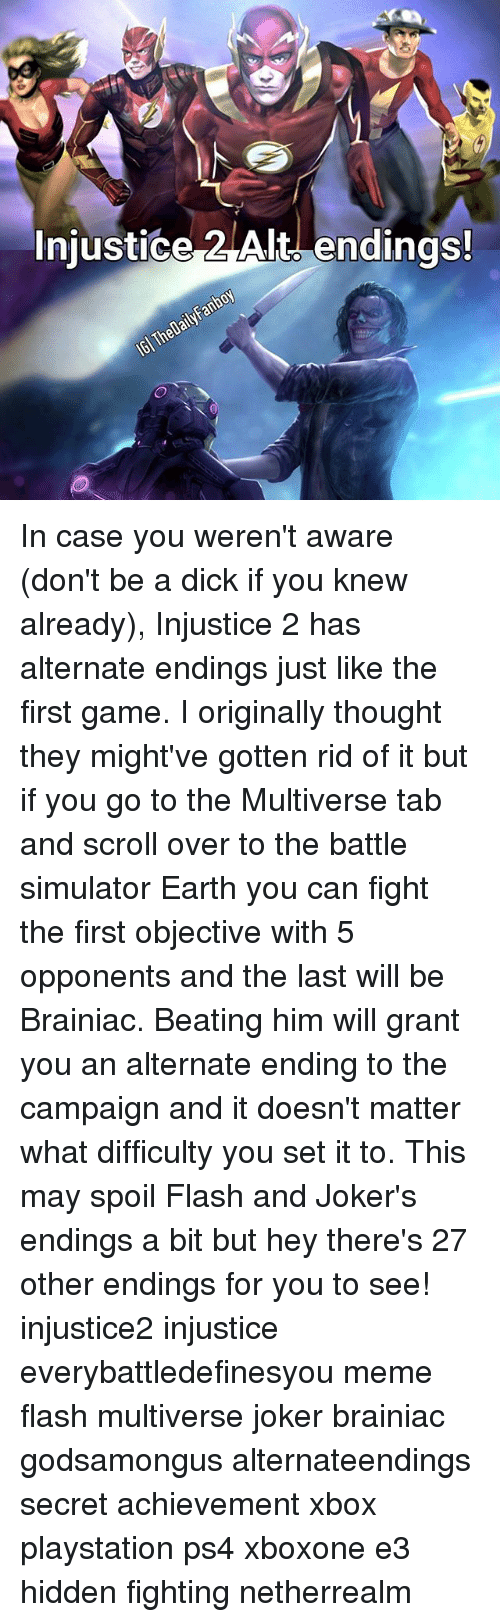 Spoiles: Injustice Alt endings! In case you weren't aware (don't be a dick if you knew already), Injustice 2 has alternate endings just like the first game. I originally thought they might've gotten rid of it but if you go to the Multiverse tab and scroll over to the battle simulator Earth you can fight the first objective with 5 opponents and the last will be Brainiac. Beating him will grant you an alternate ending to the campaign and it doesn't matter what difficulty you set it to. This may spoil Flash and Joker's endings a bit but hey there's 27 other endings for you to see! injustice2 injustice everybattledefinesyou meme flash multiverse joker brainiac godsamongus alternateendings secret achievement xbox playstation ps4 xboxone e3 hidden fighting netherrealm